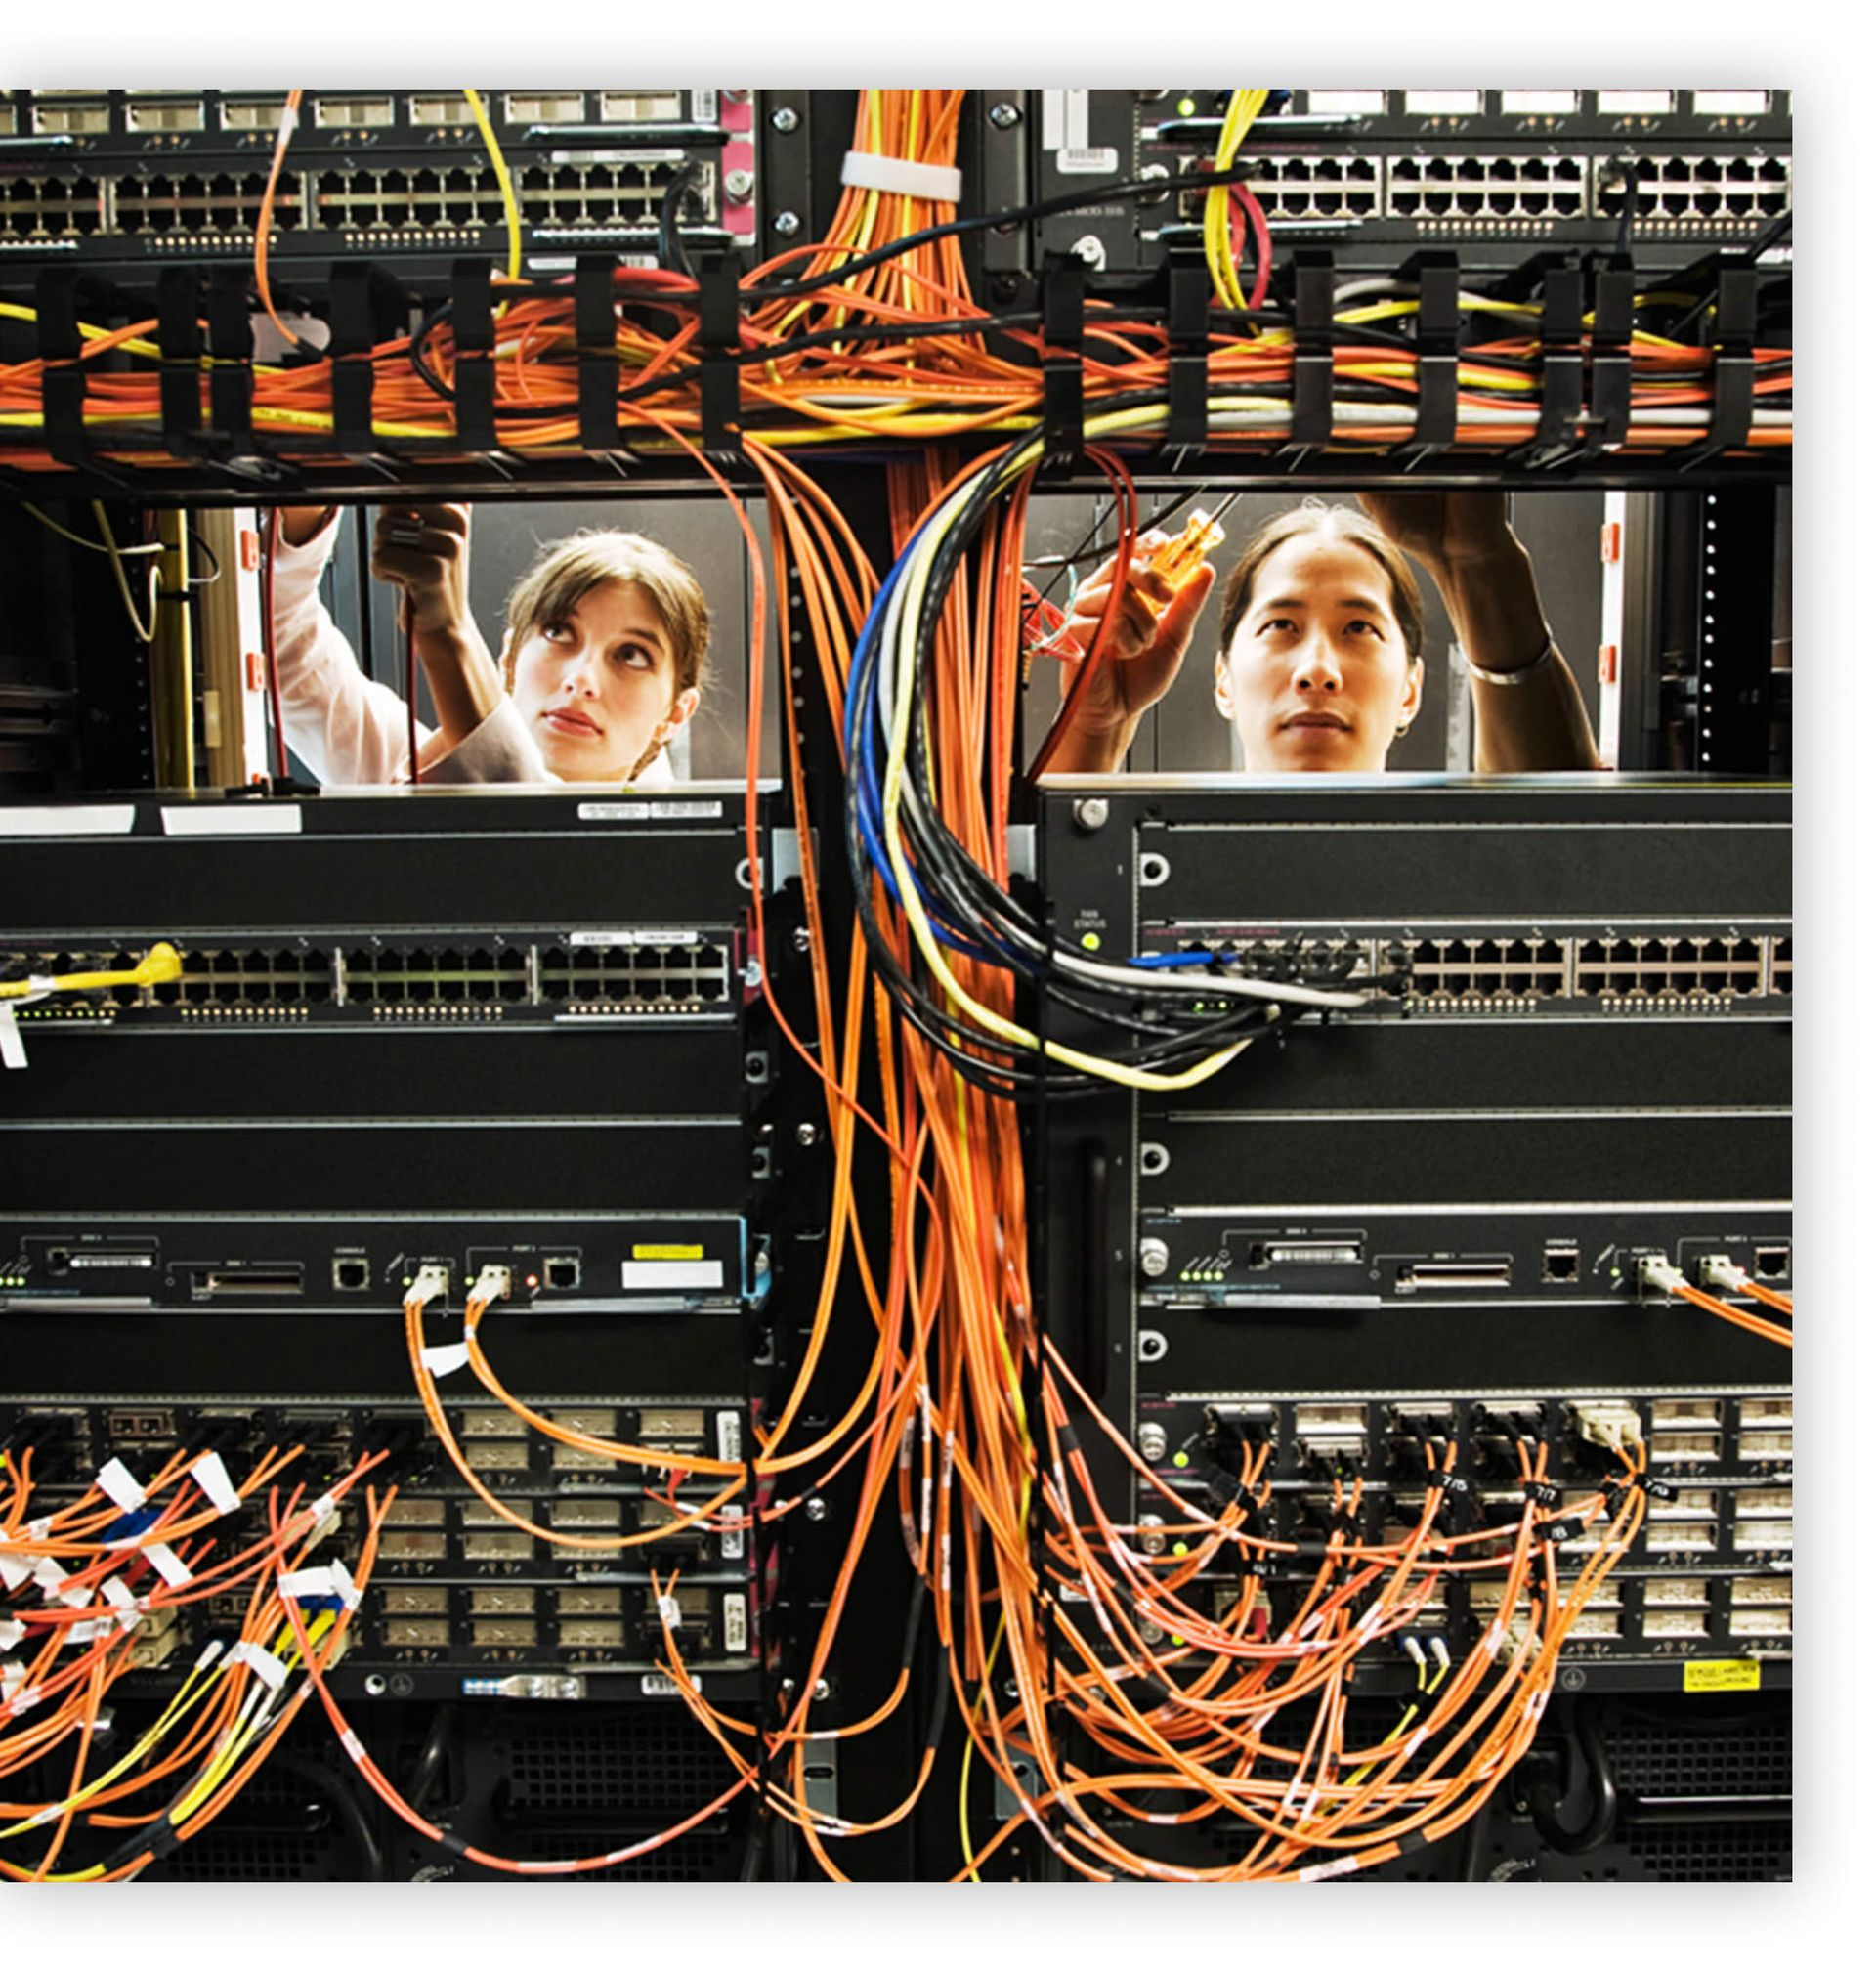 Autodesk used by electrical contractors on commercial and data center projects